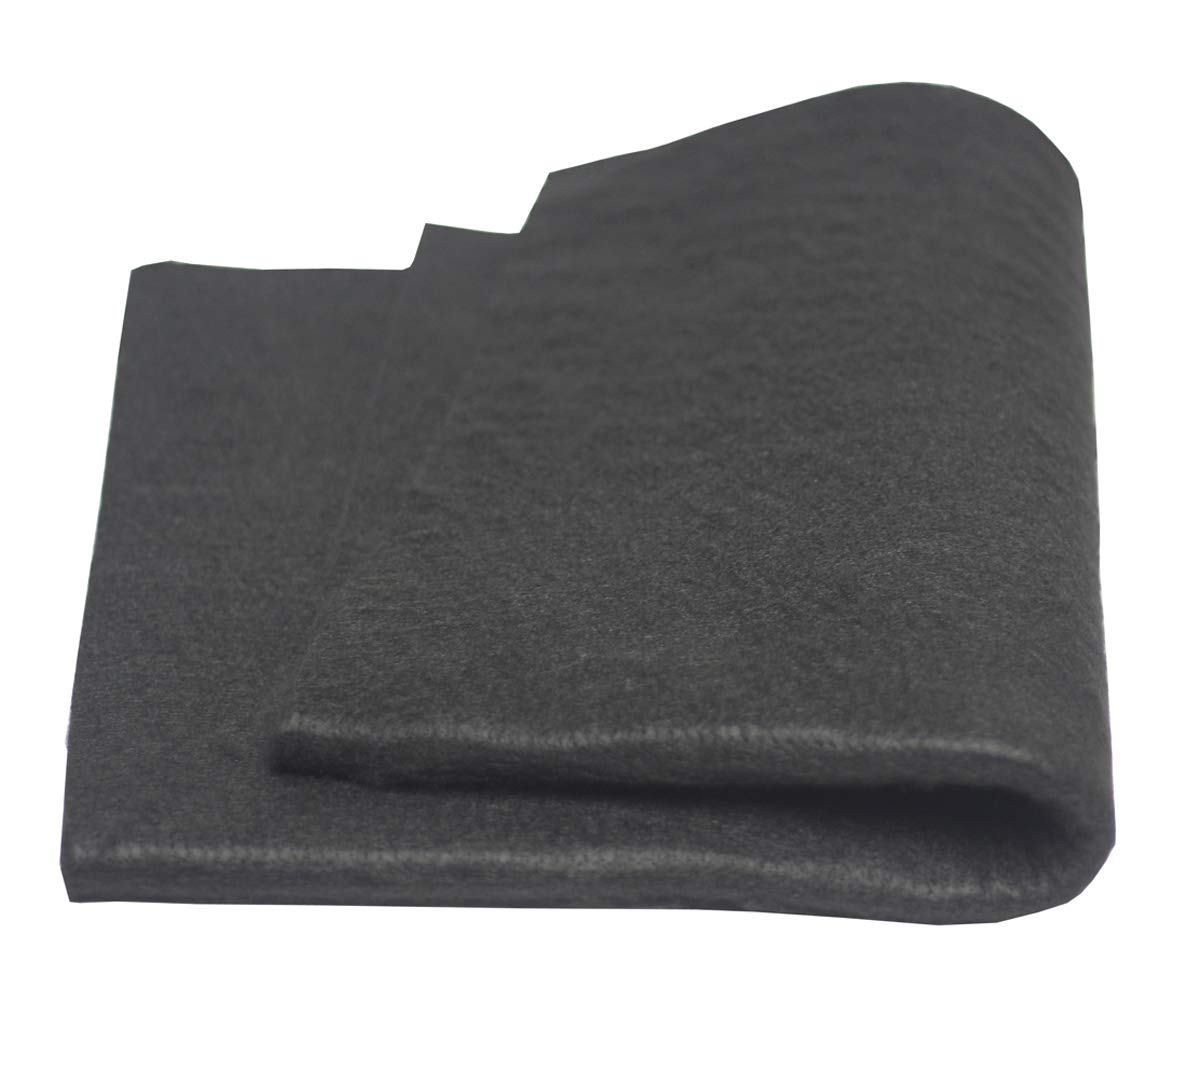 1. Hansway High Temp Felt Carbon Fiber Welding Blanket